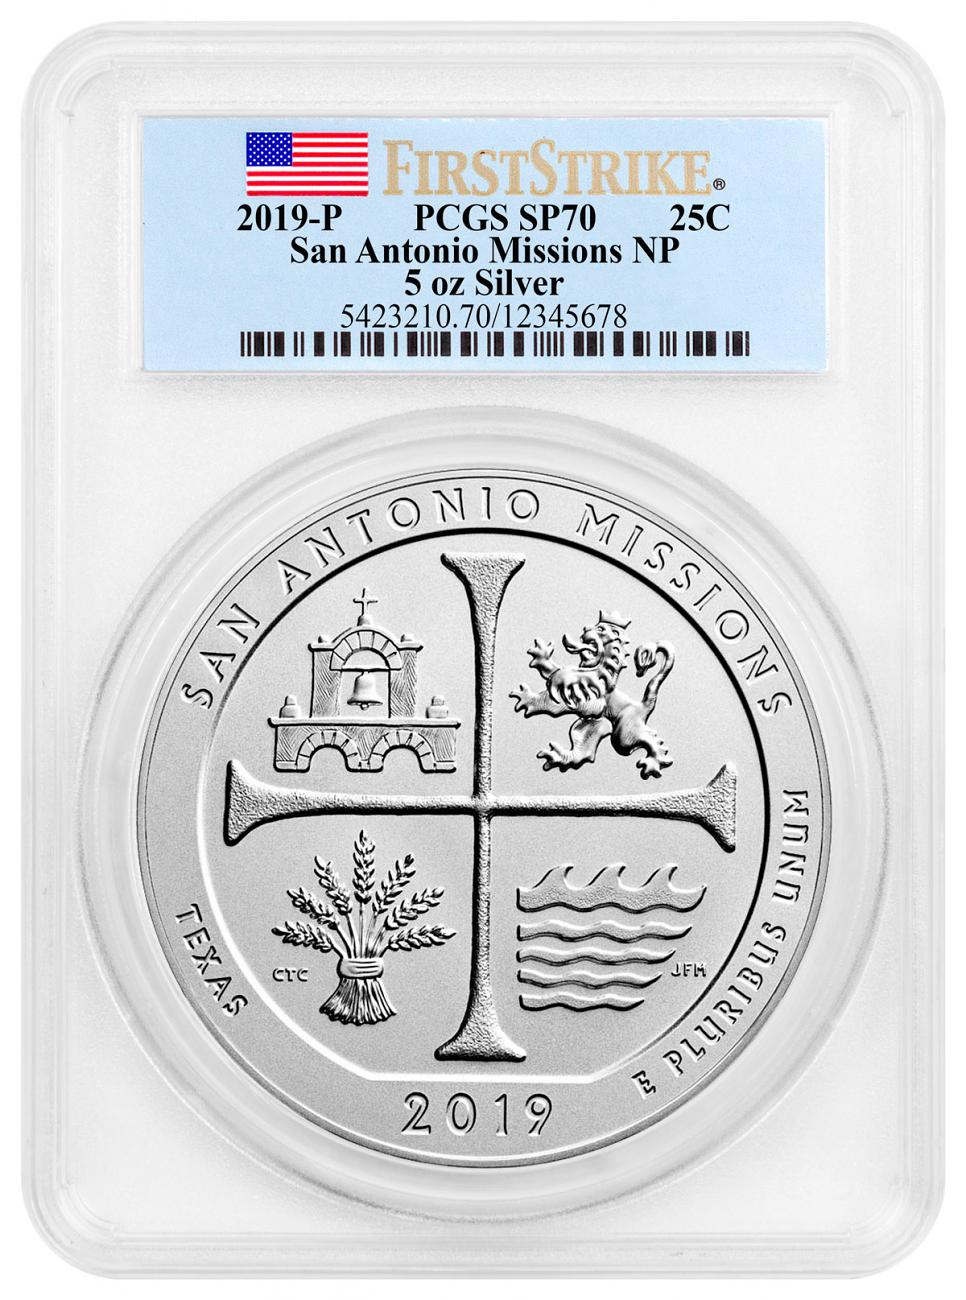 2019-P San Antonio Missions Historical Park 5 oz. Silver America the Beautiful Specimen Coin PCGS SP70 FS Flag Label